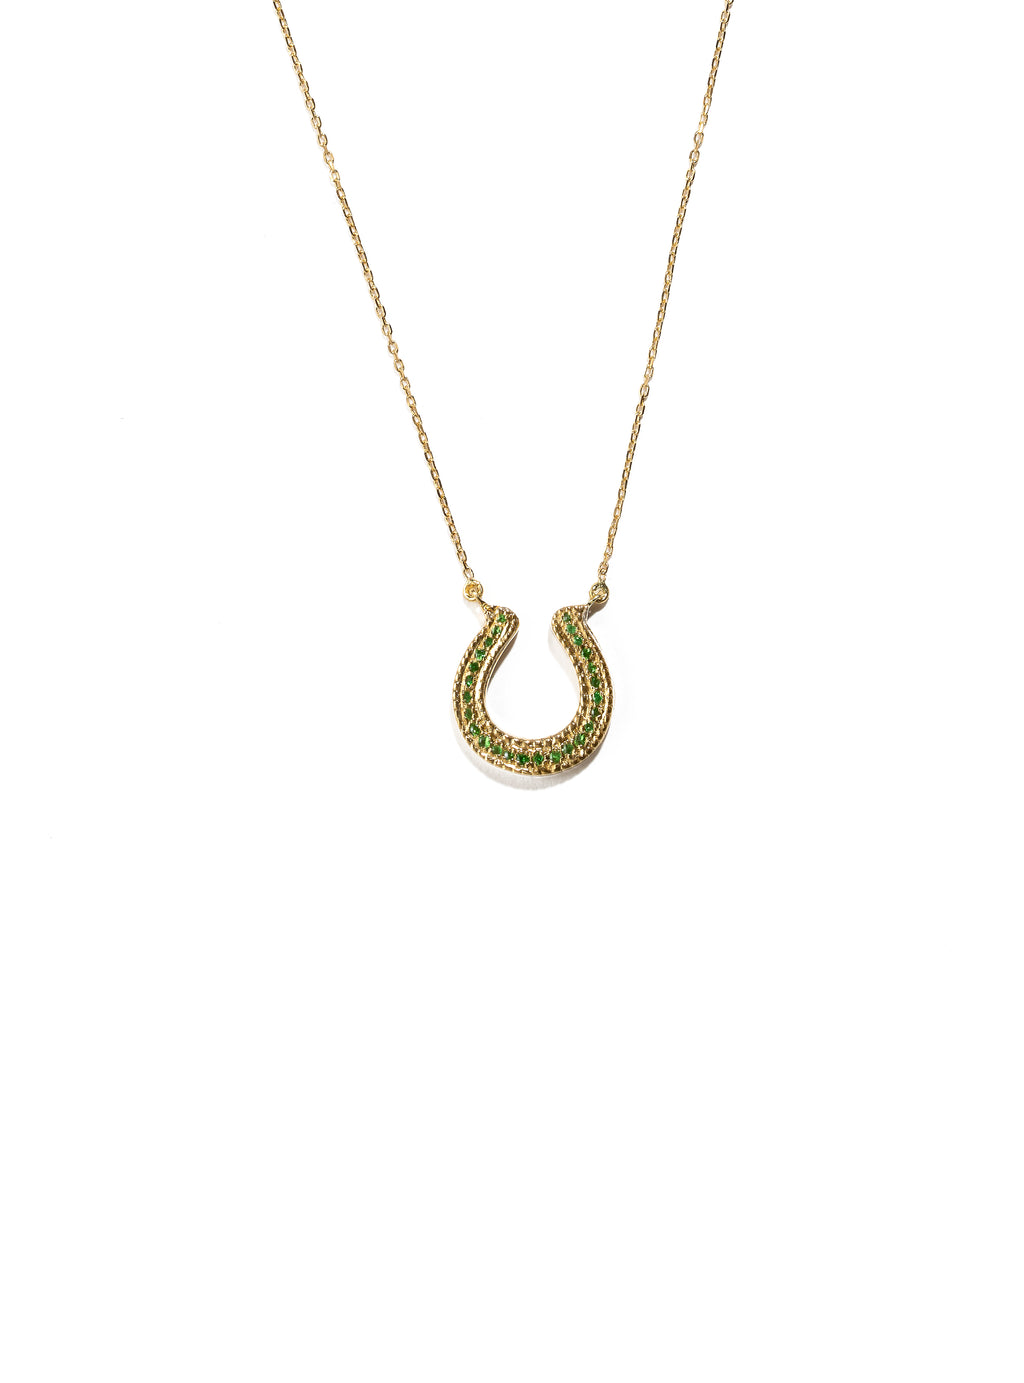 Horseshoe Necklace with Green Tsavorites